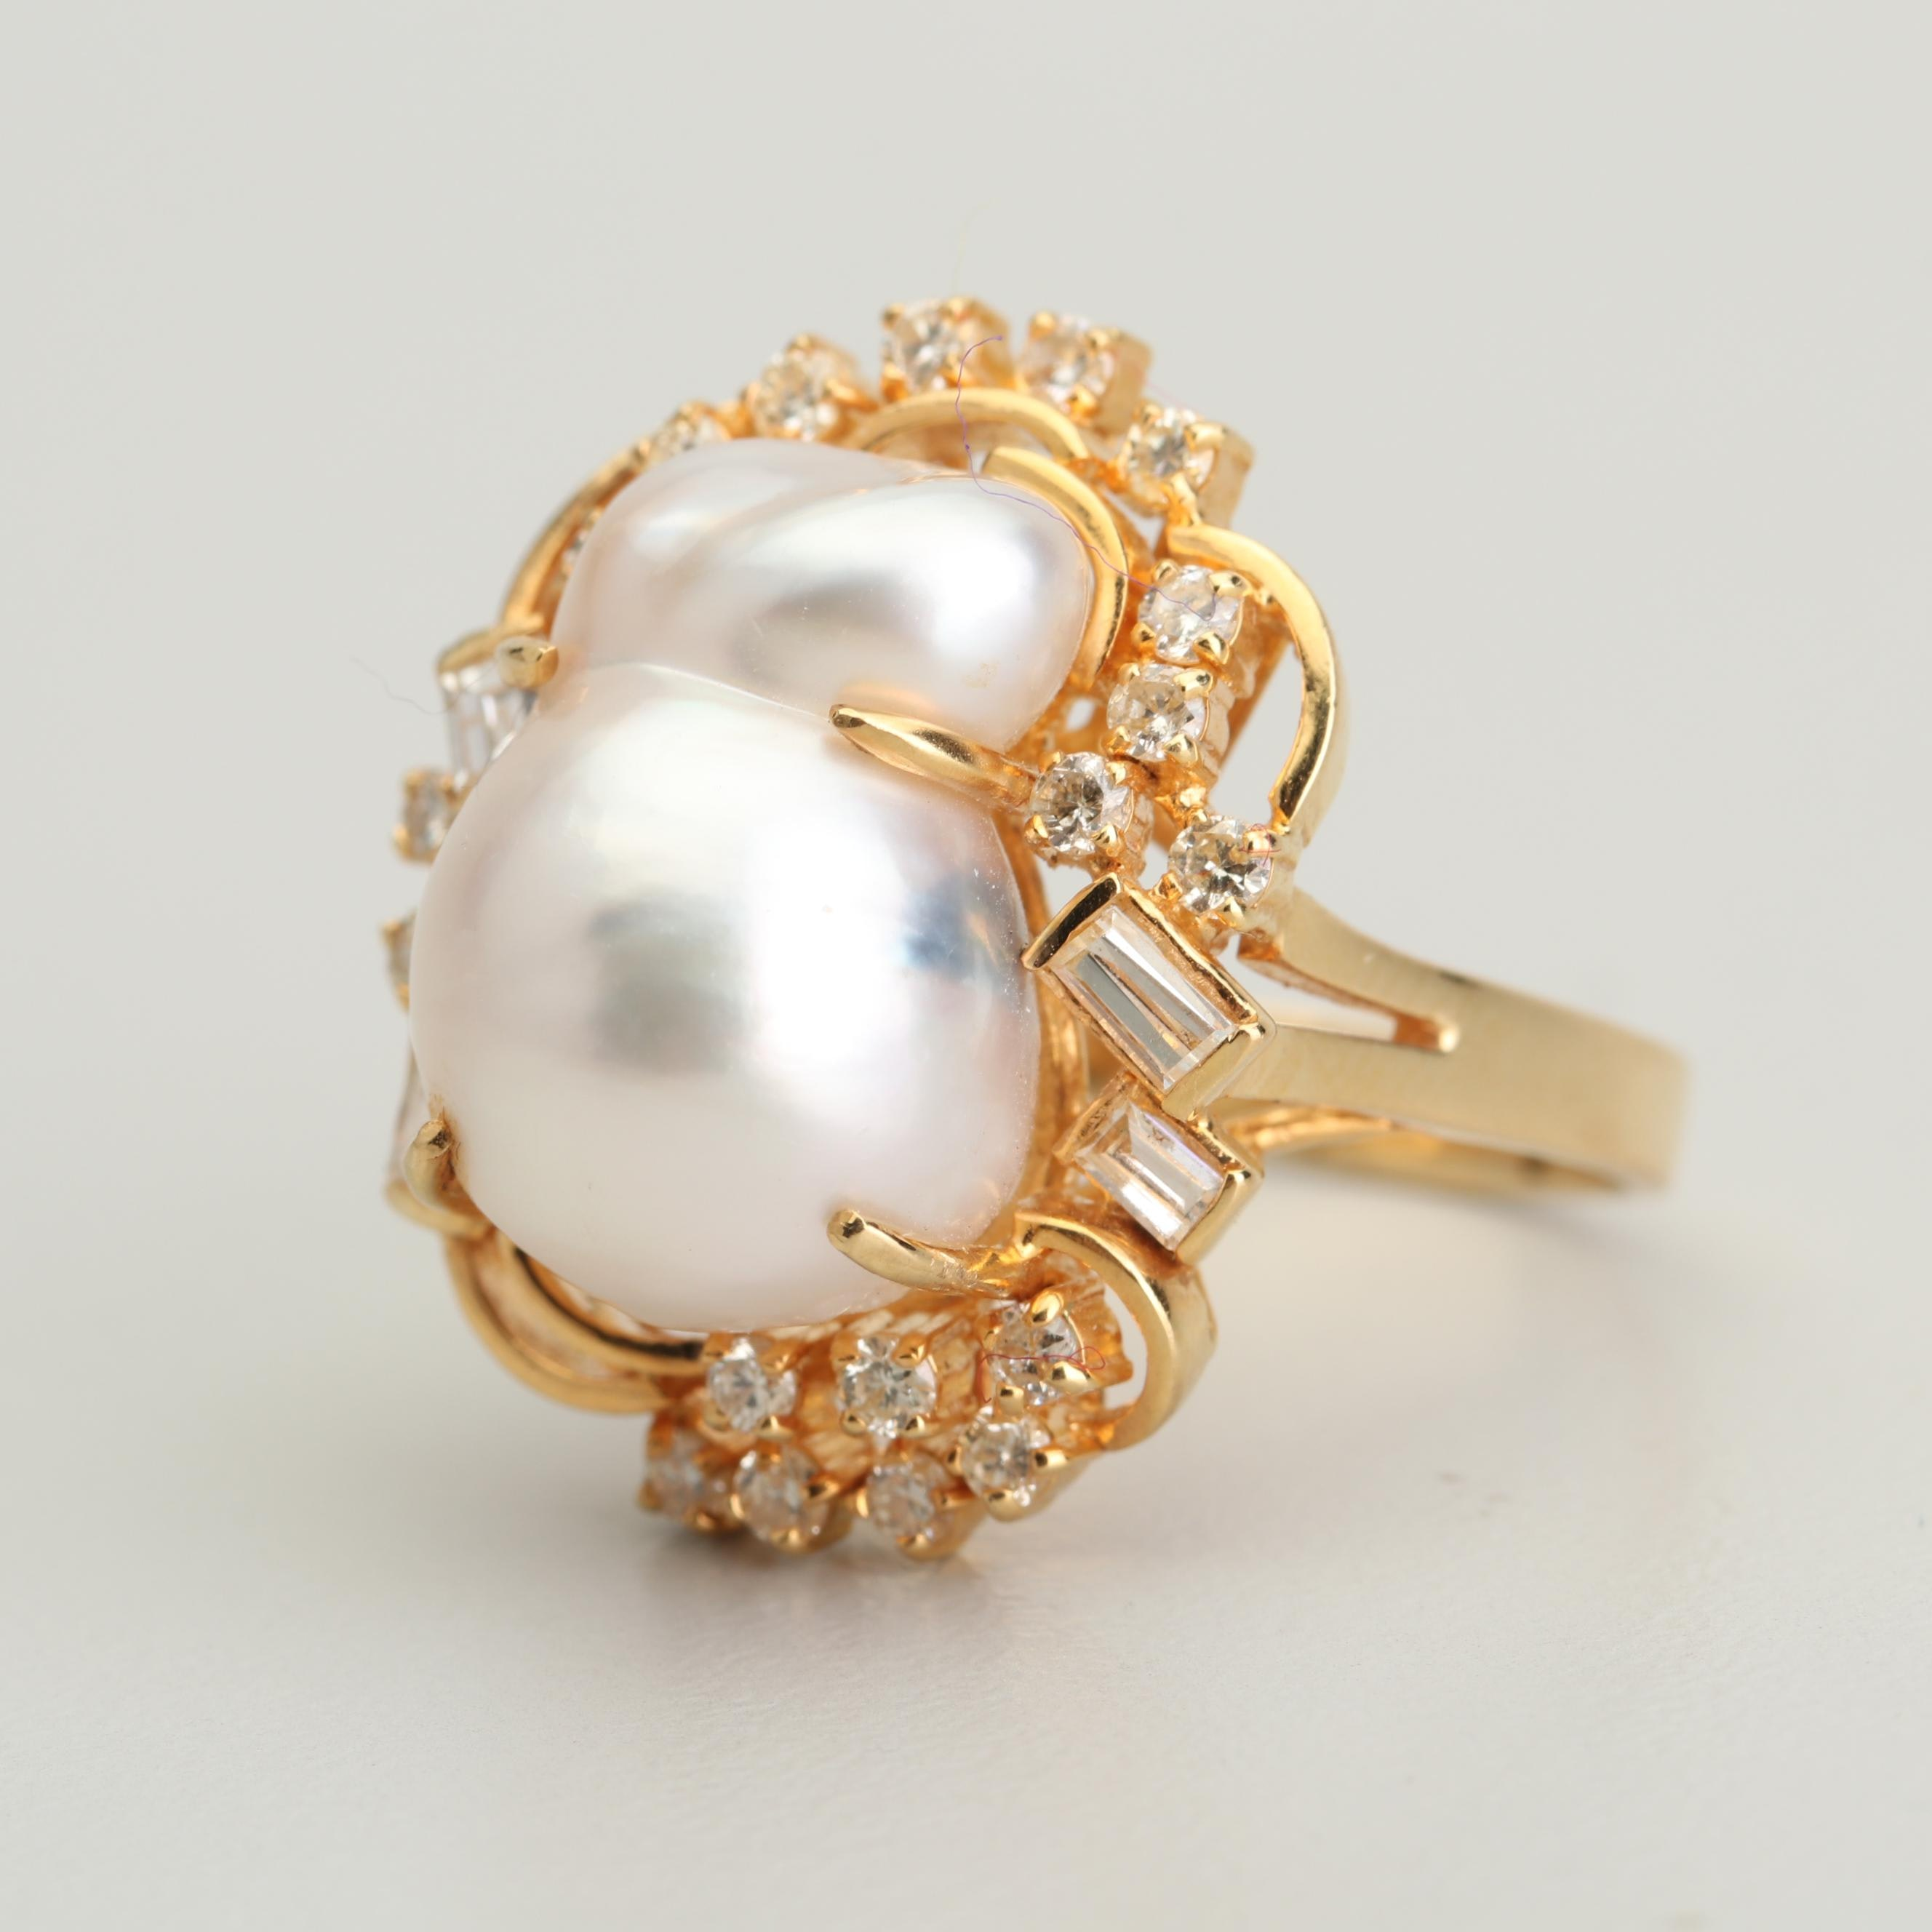 18K Yellow Gold Freshwater Cultured Pearl and Diamond Ring